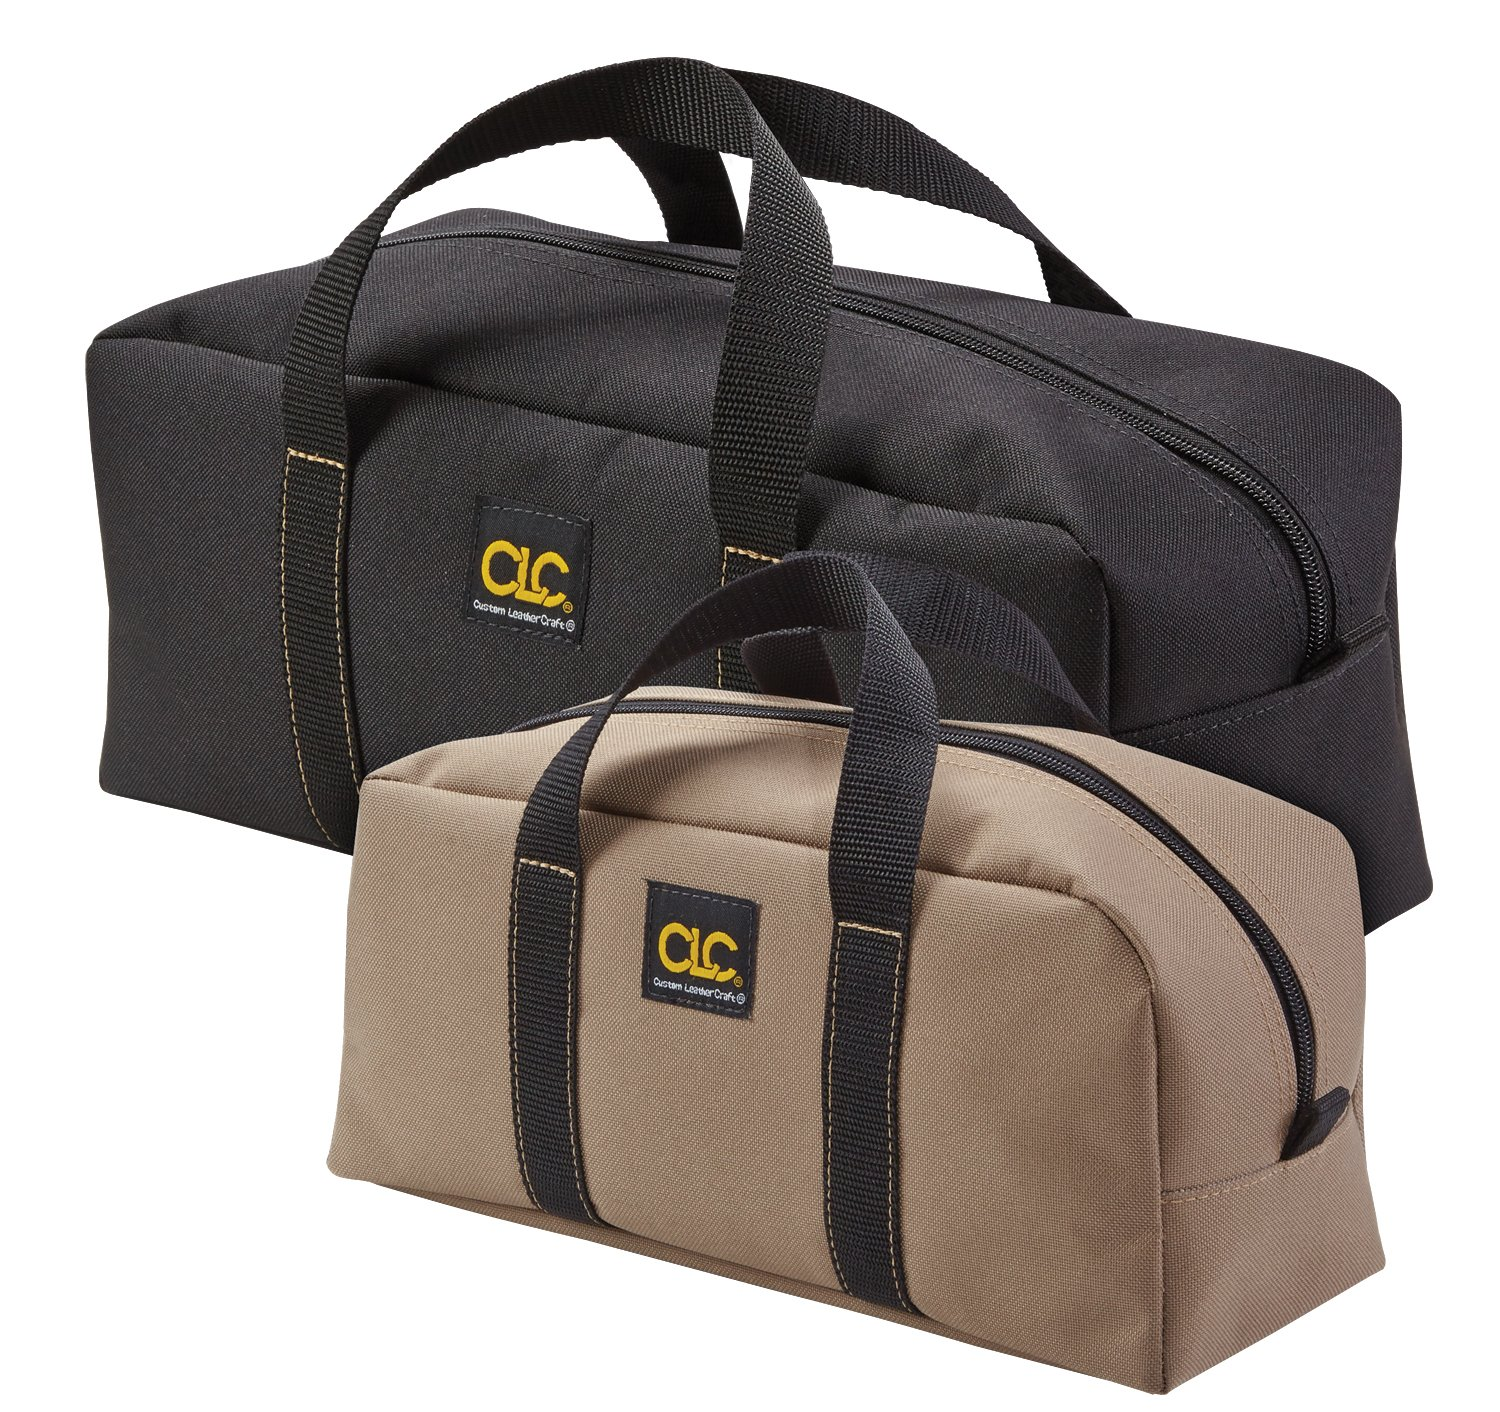 CLC Utility Tote Bag $5 Each a...